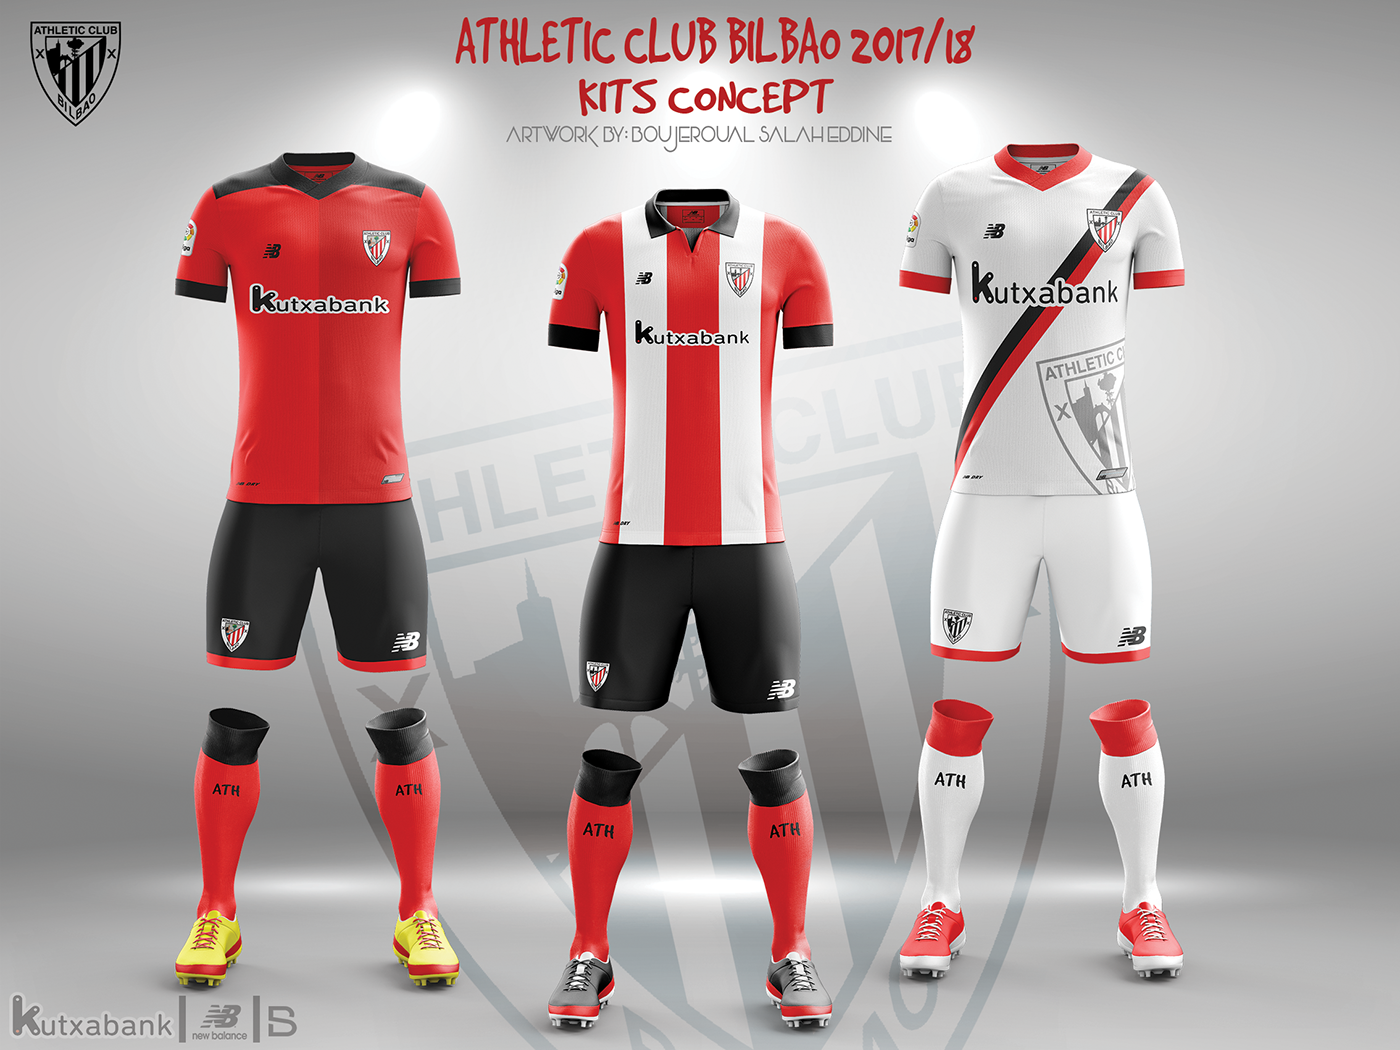 9120dbd8acd19 Save to Collection. Follow Following Unfollow. Athletic Club BILBAO ...